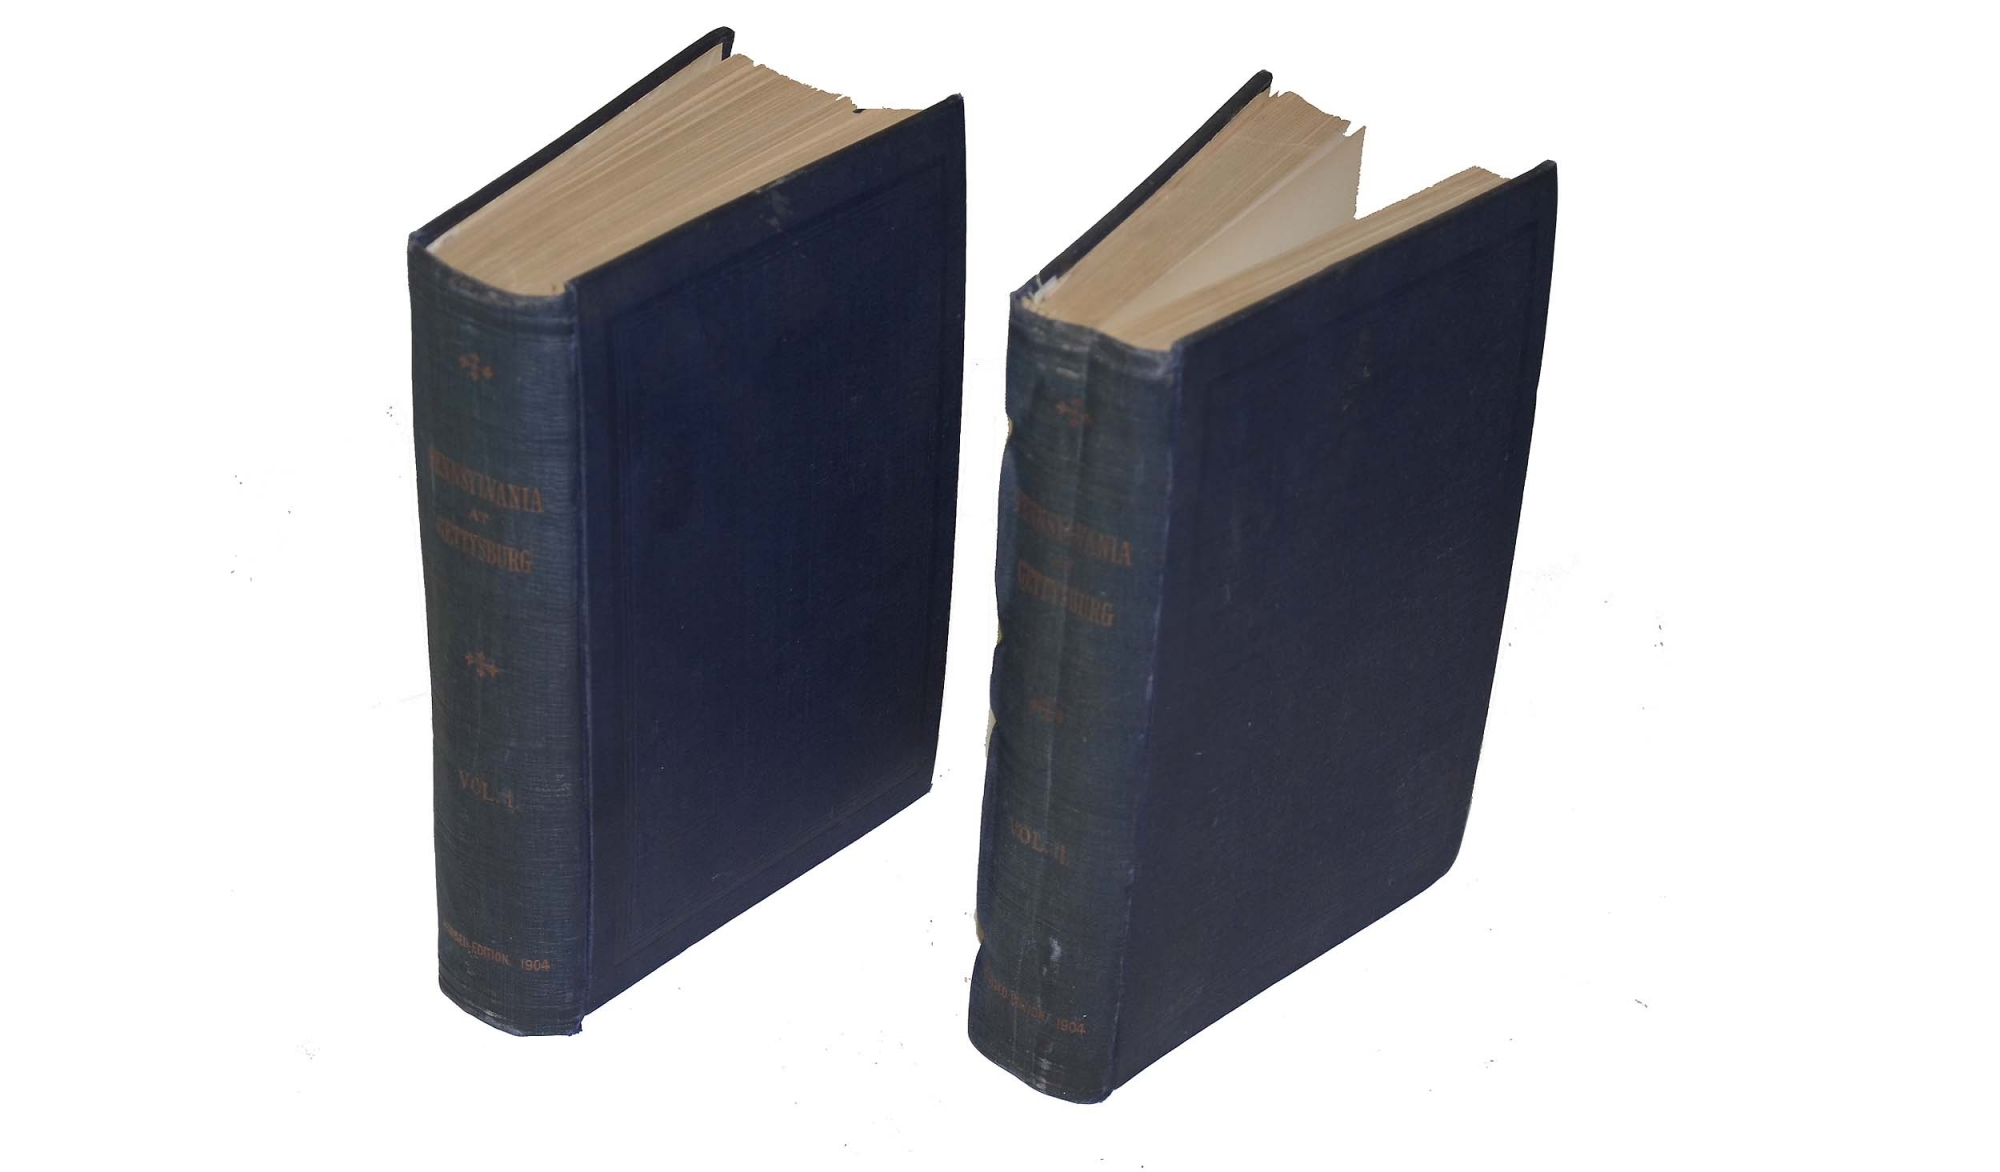 PENNSYLVANIA AT GETTYSBURG, VOLS. 1 & 2. FIRST EDITION, 1904 - OWNED BY 97TH PENN. MEDAL OF HONOR WINNER